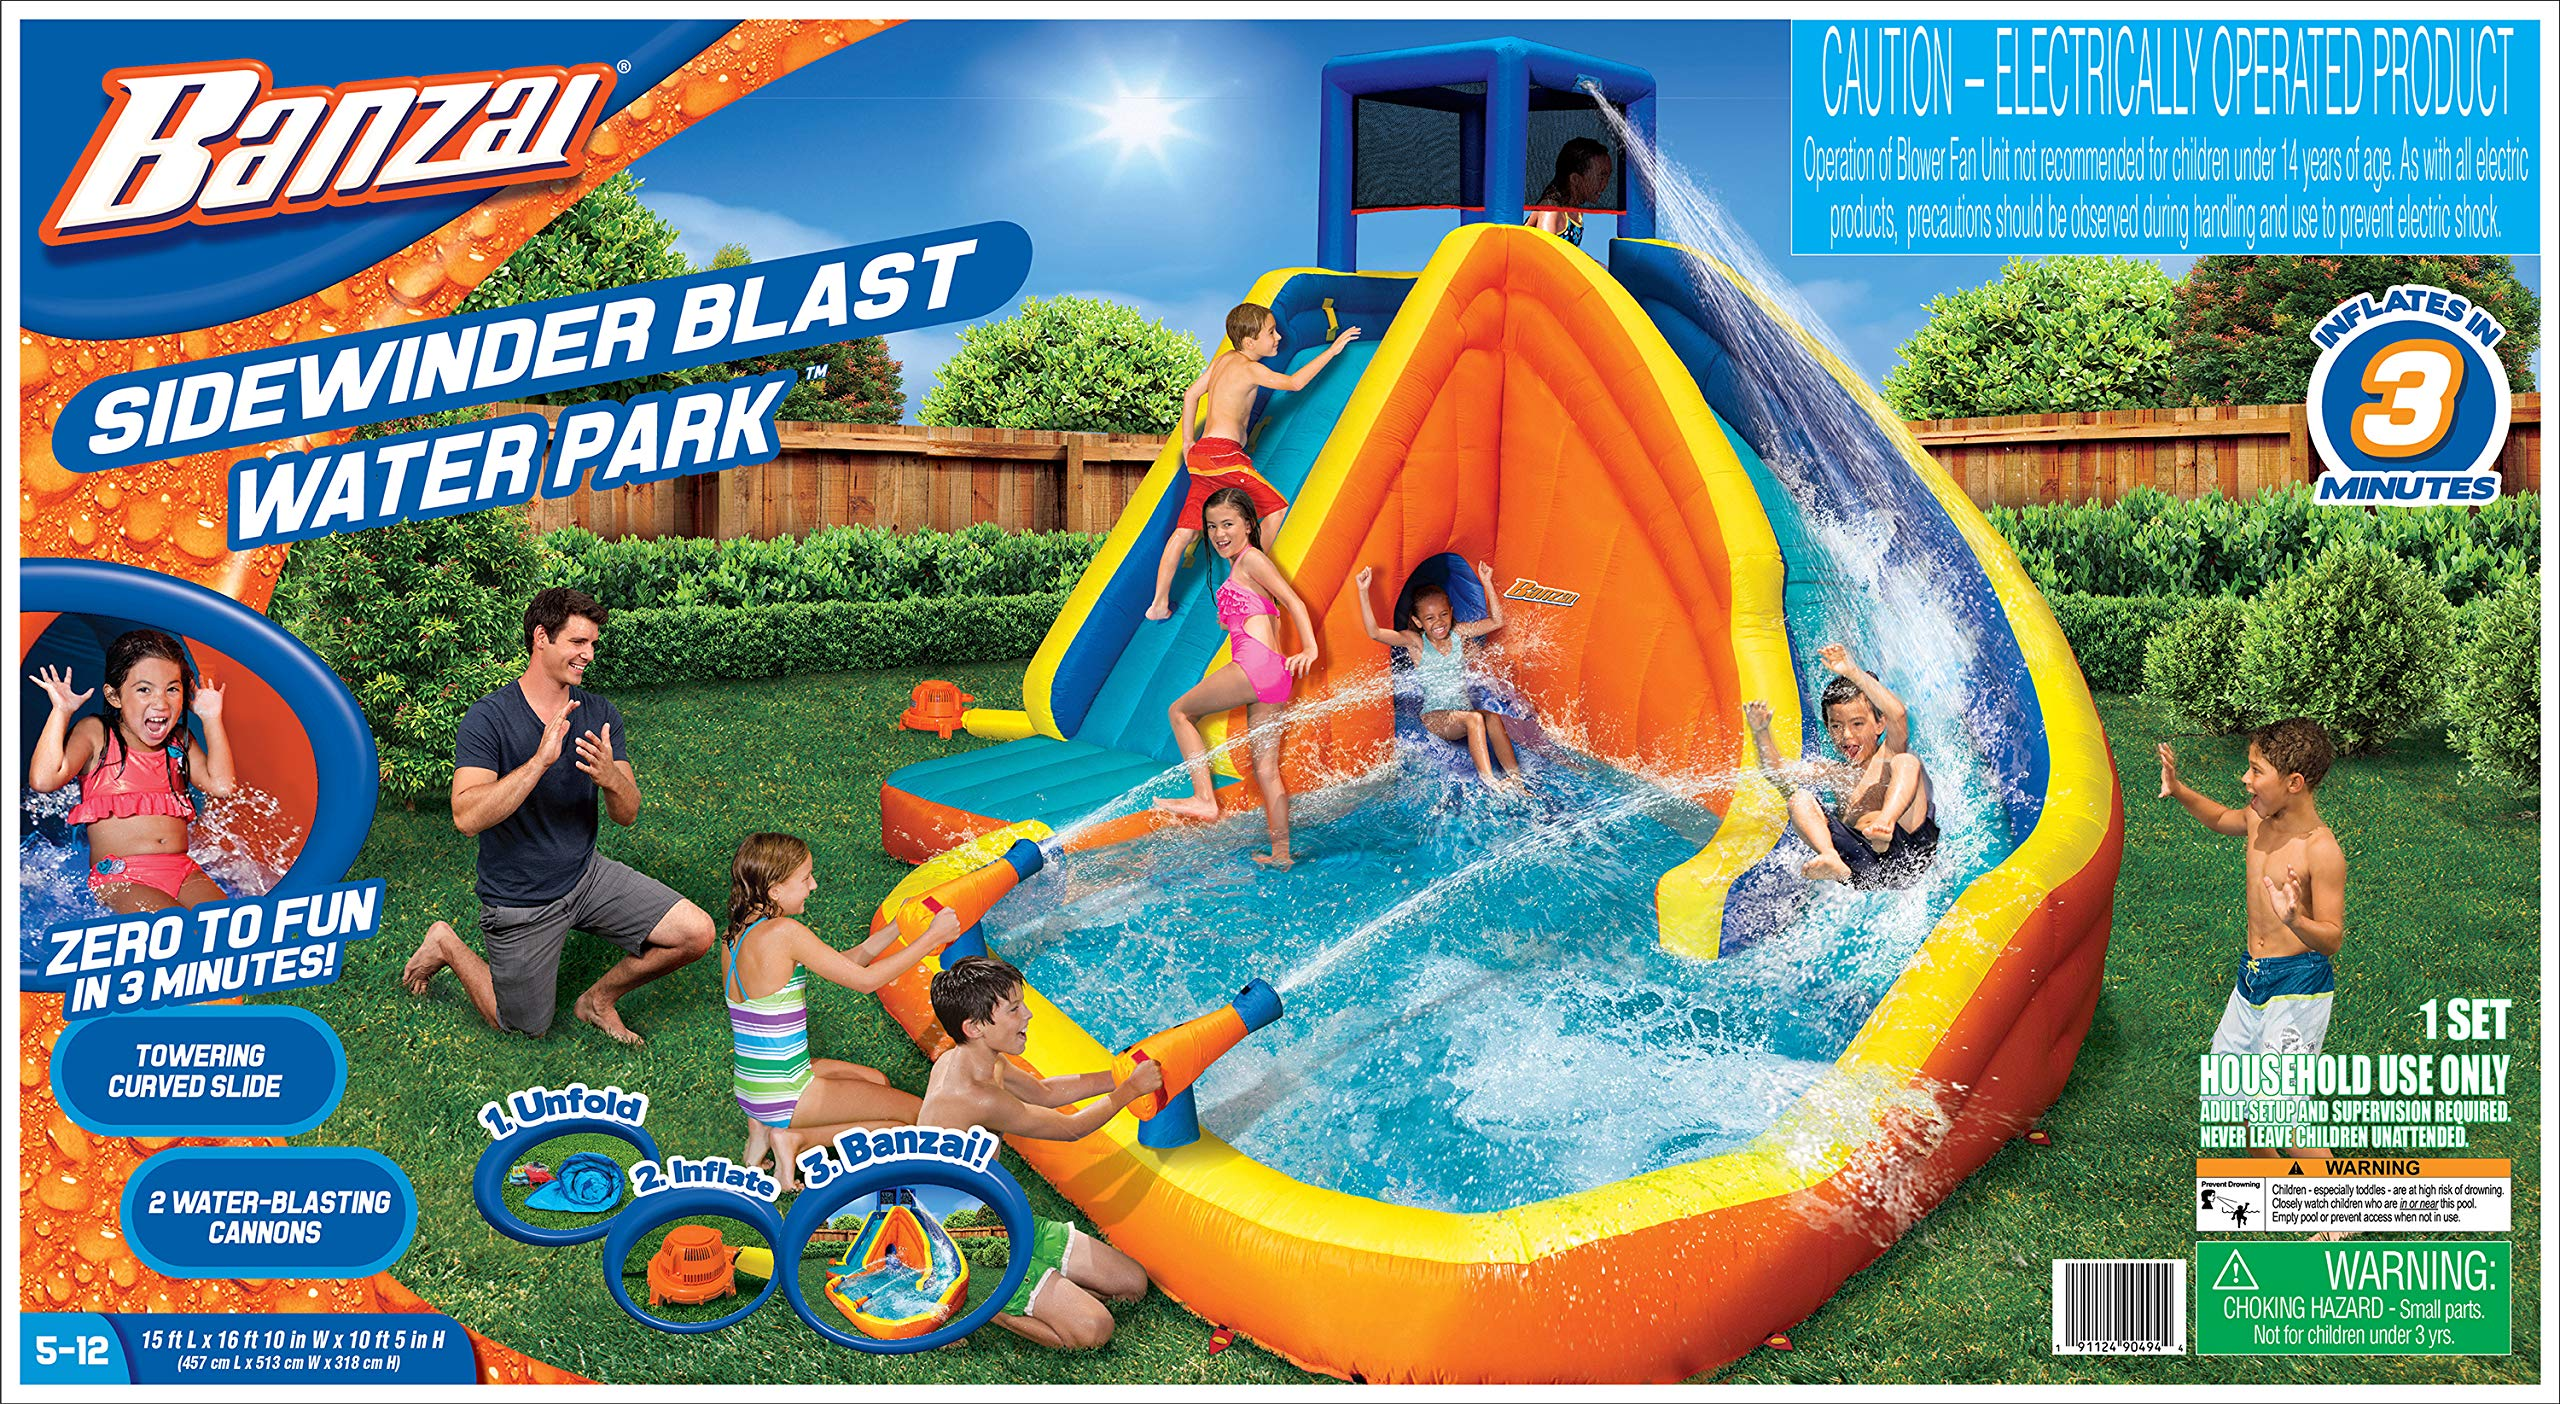 BANZAI 90494 Sidewinder Falls Inflatable Water Slide with Tunnel Ramp Slide by BANZAI (Image #5)